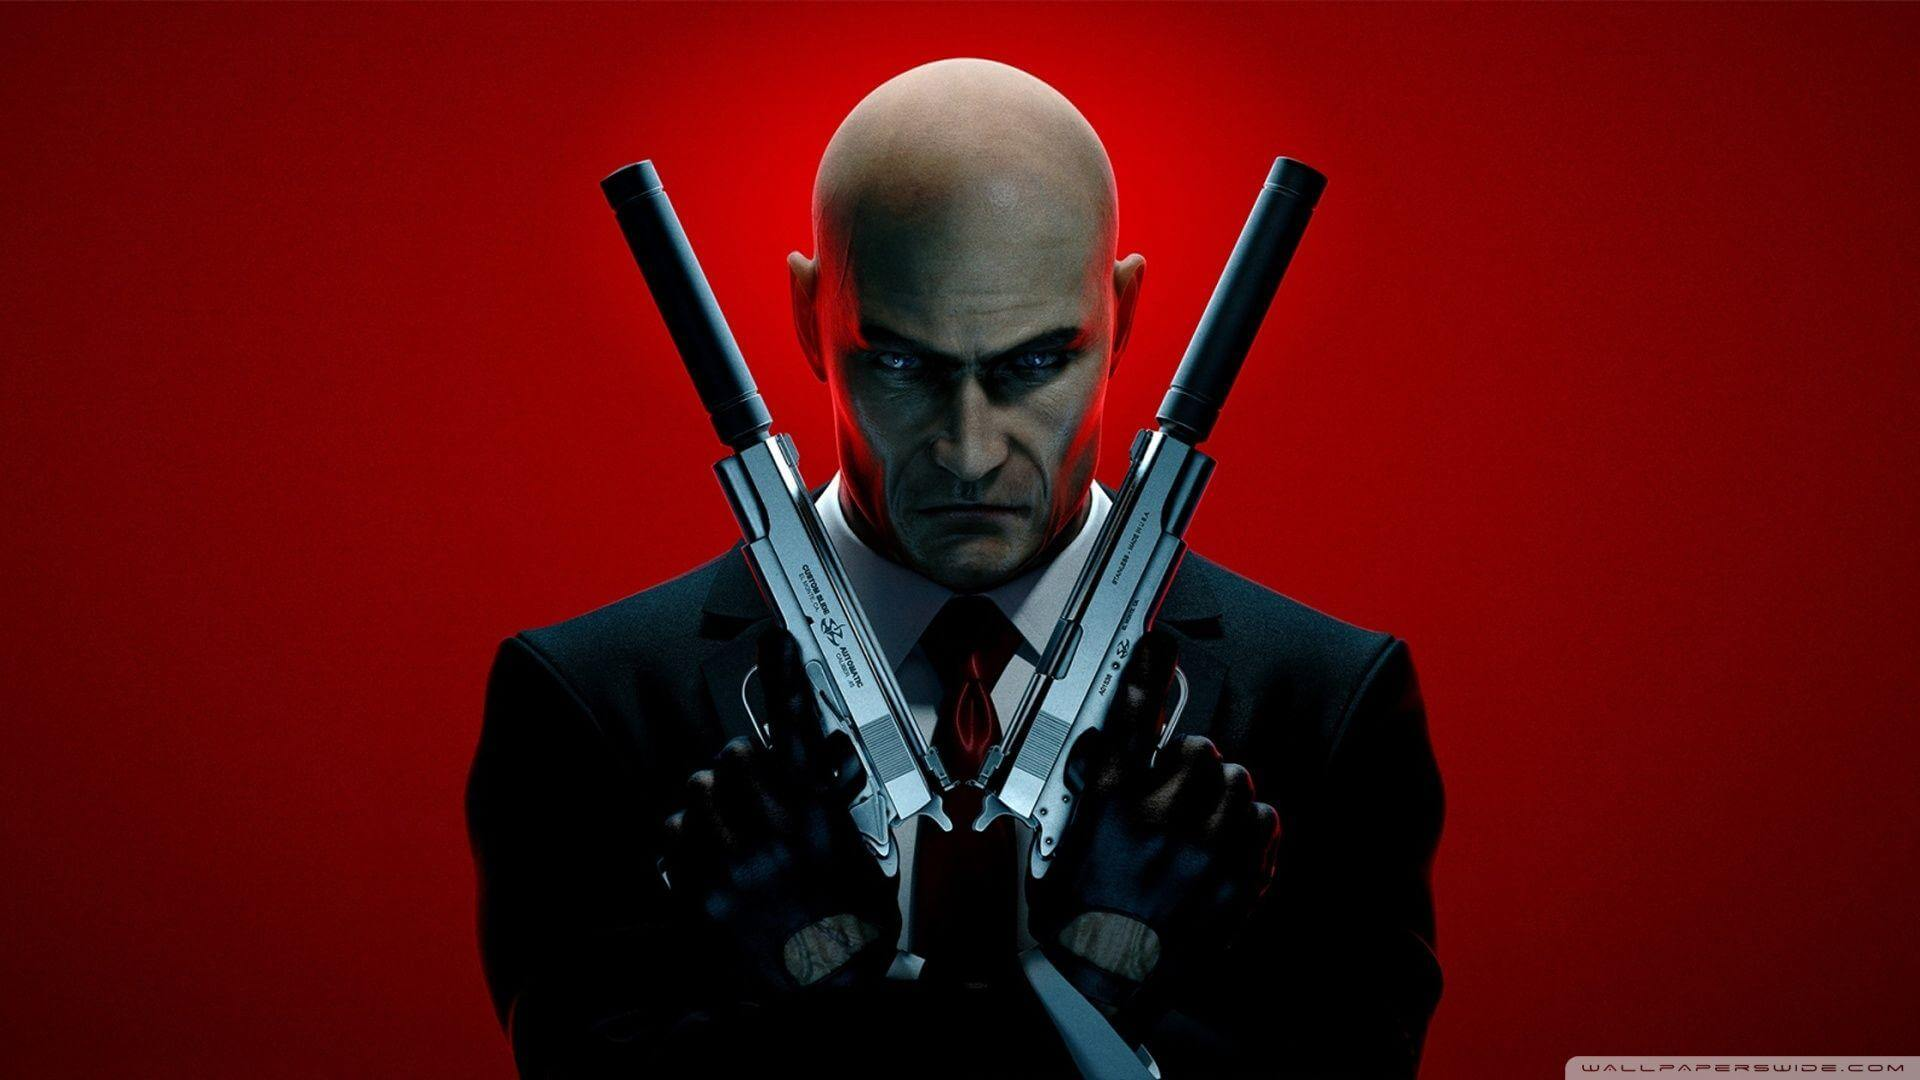 hitman-2-featured-wallpaper